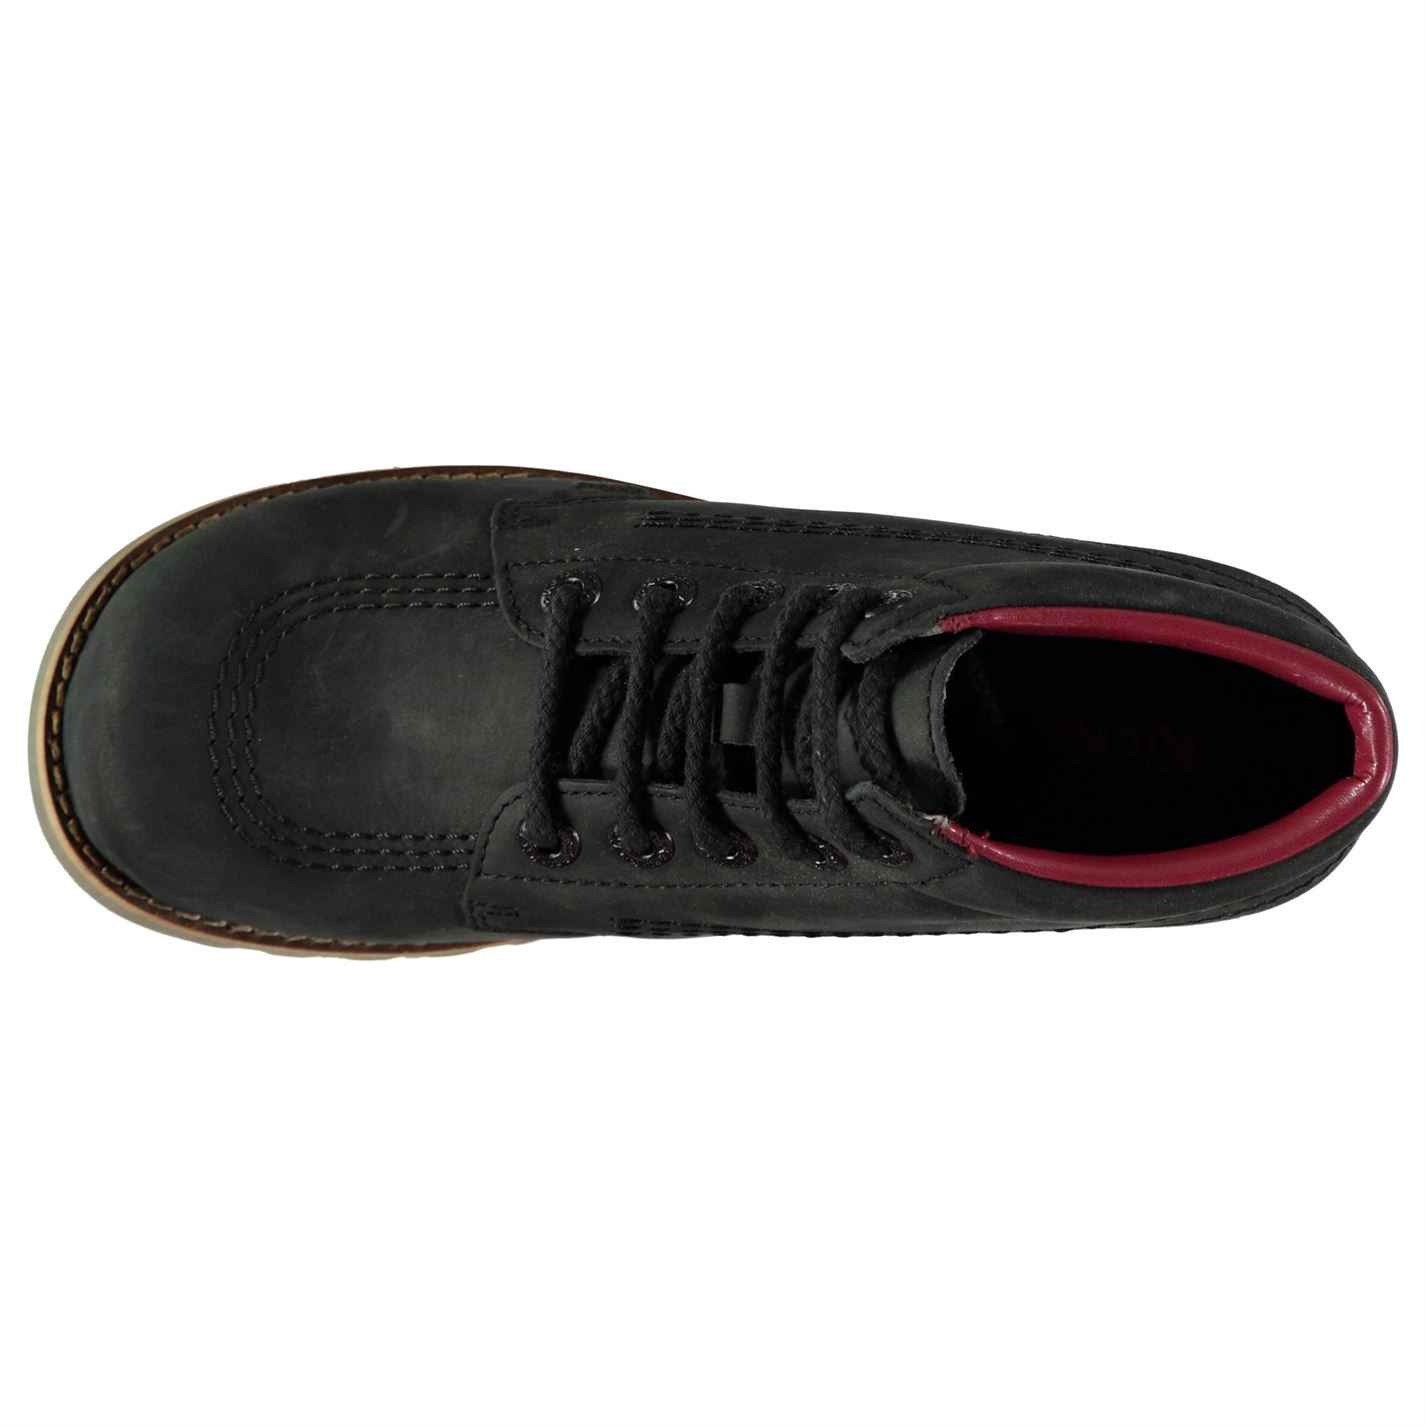 Kickers Kickers Kickers Kick Hi Classic Leather shoes Ladies Laces Fastened be9a49